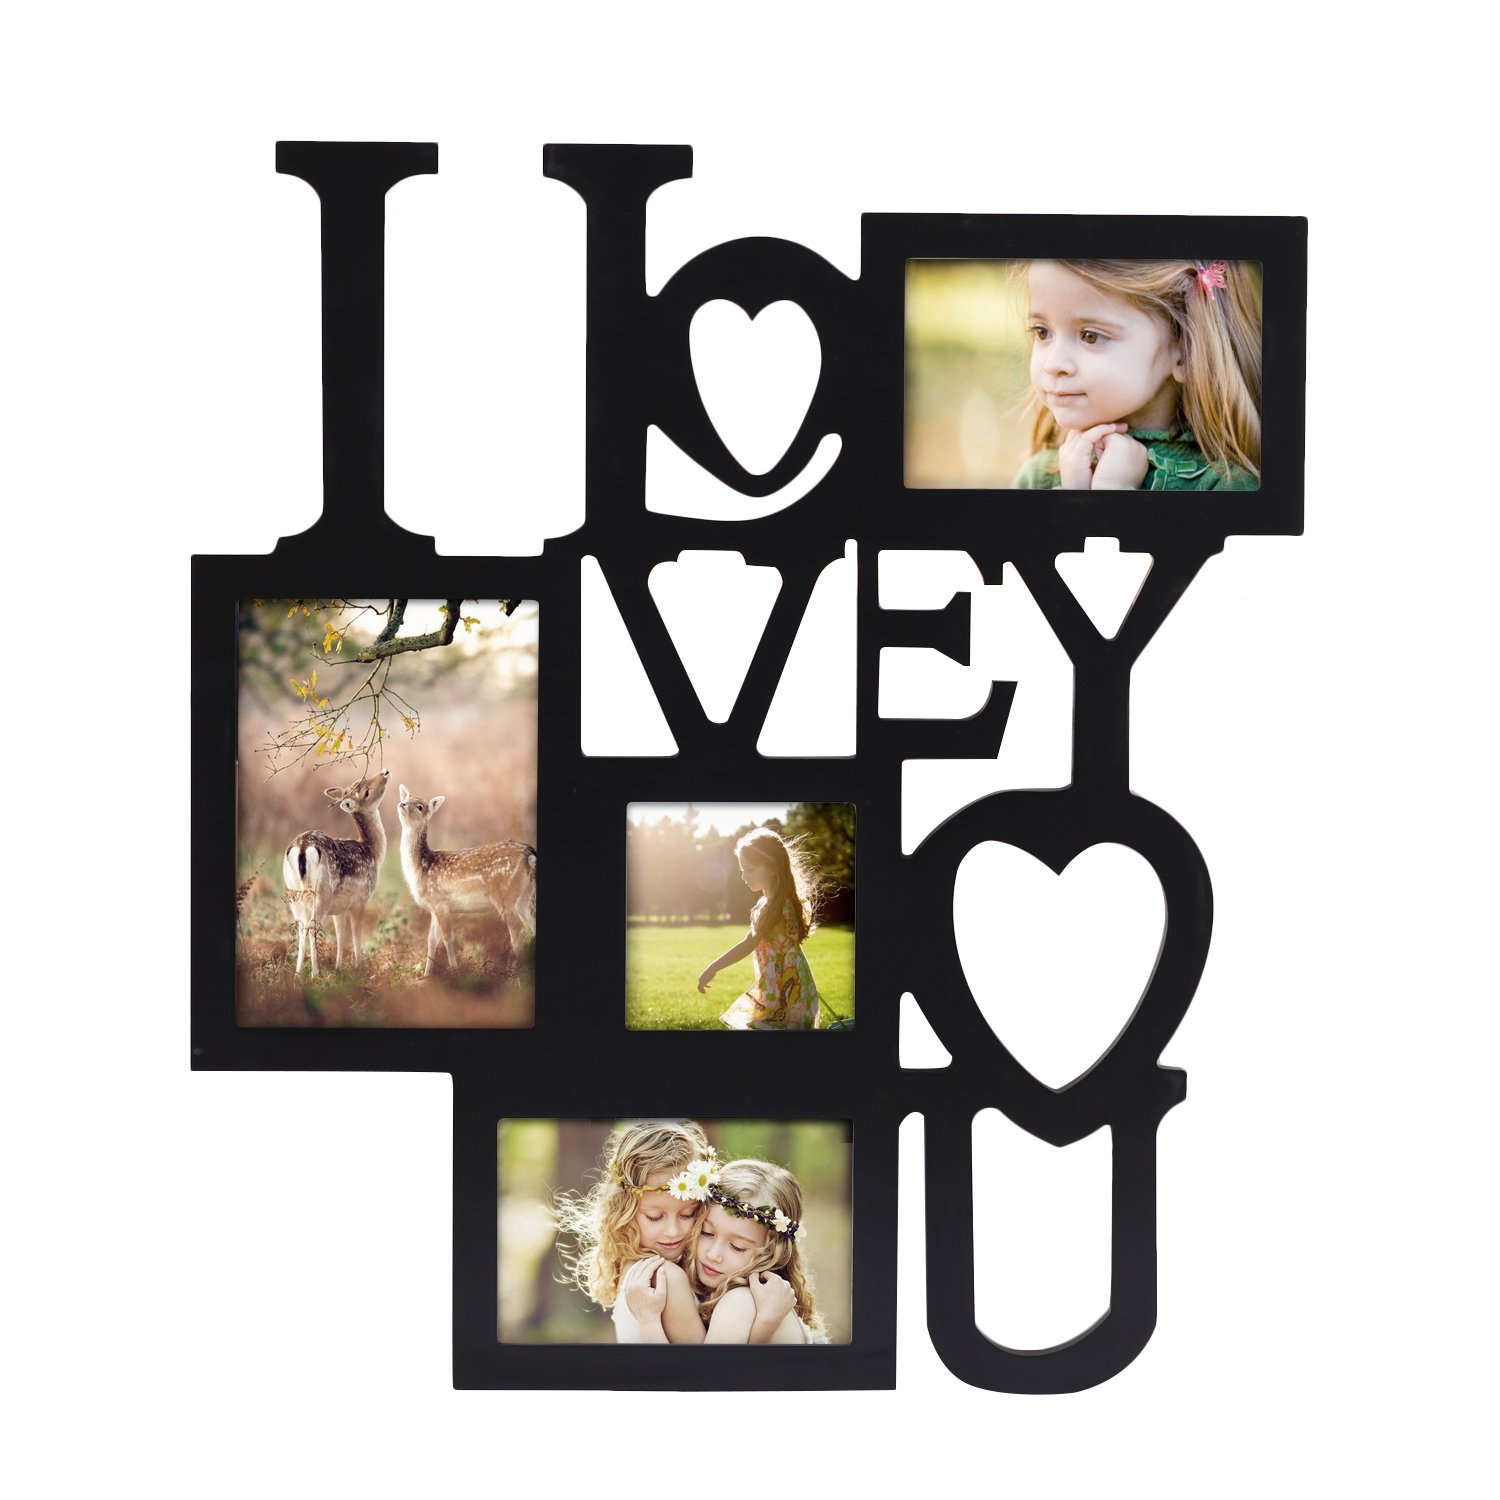 "Adeco 4 Openings Decorative Black Wood ''I Love You'' Collage Wall Hanging Picture Photo Frame, One 5"" x 7"", Two 4"" x 6"", One 4"" x 4"""